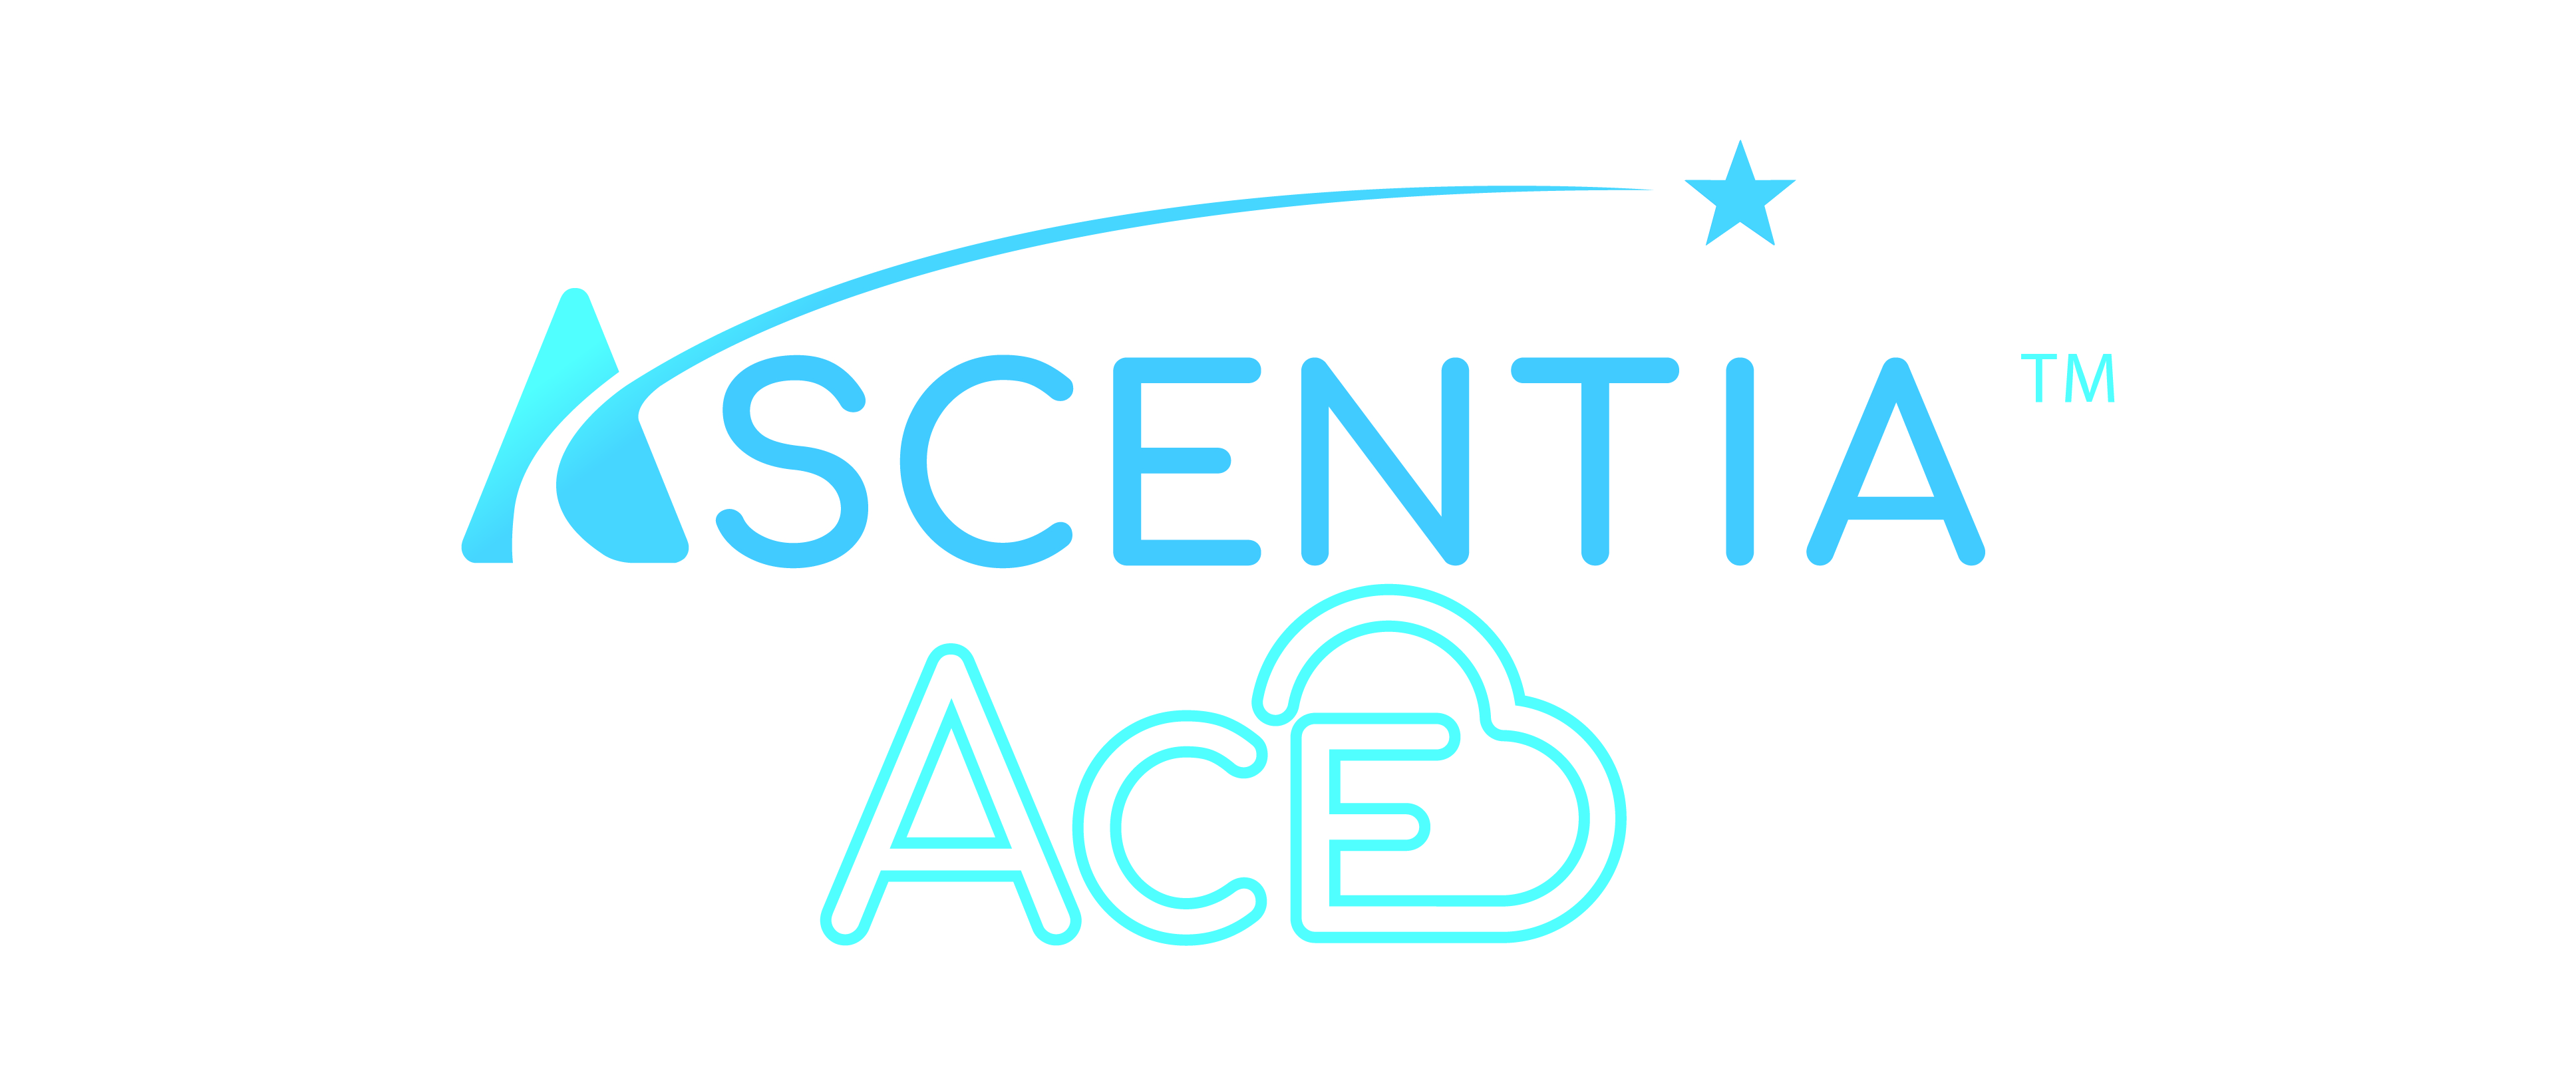 Ascentia Ace Pte Ltd